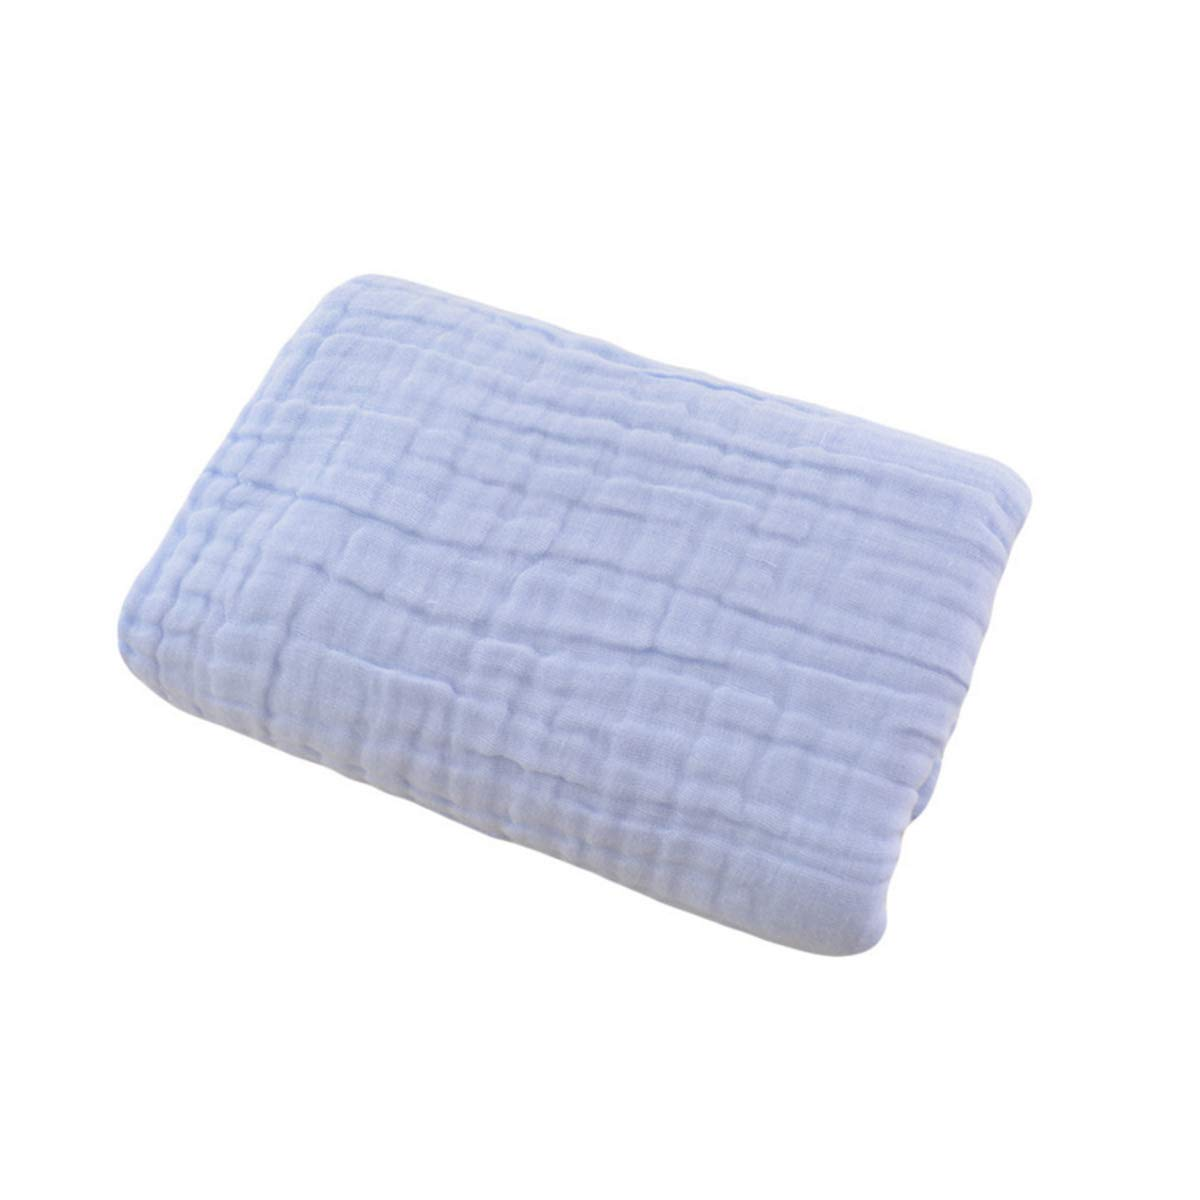 Extremely Soft and Breathable 100/% Fluffy Gauze Cotton G-Tree 6 Layer Muslin Swaddle Blanket Thermal Warm Baby Blankets 43.3x43.3in Blue